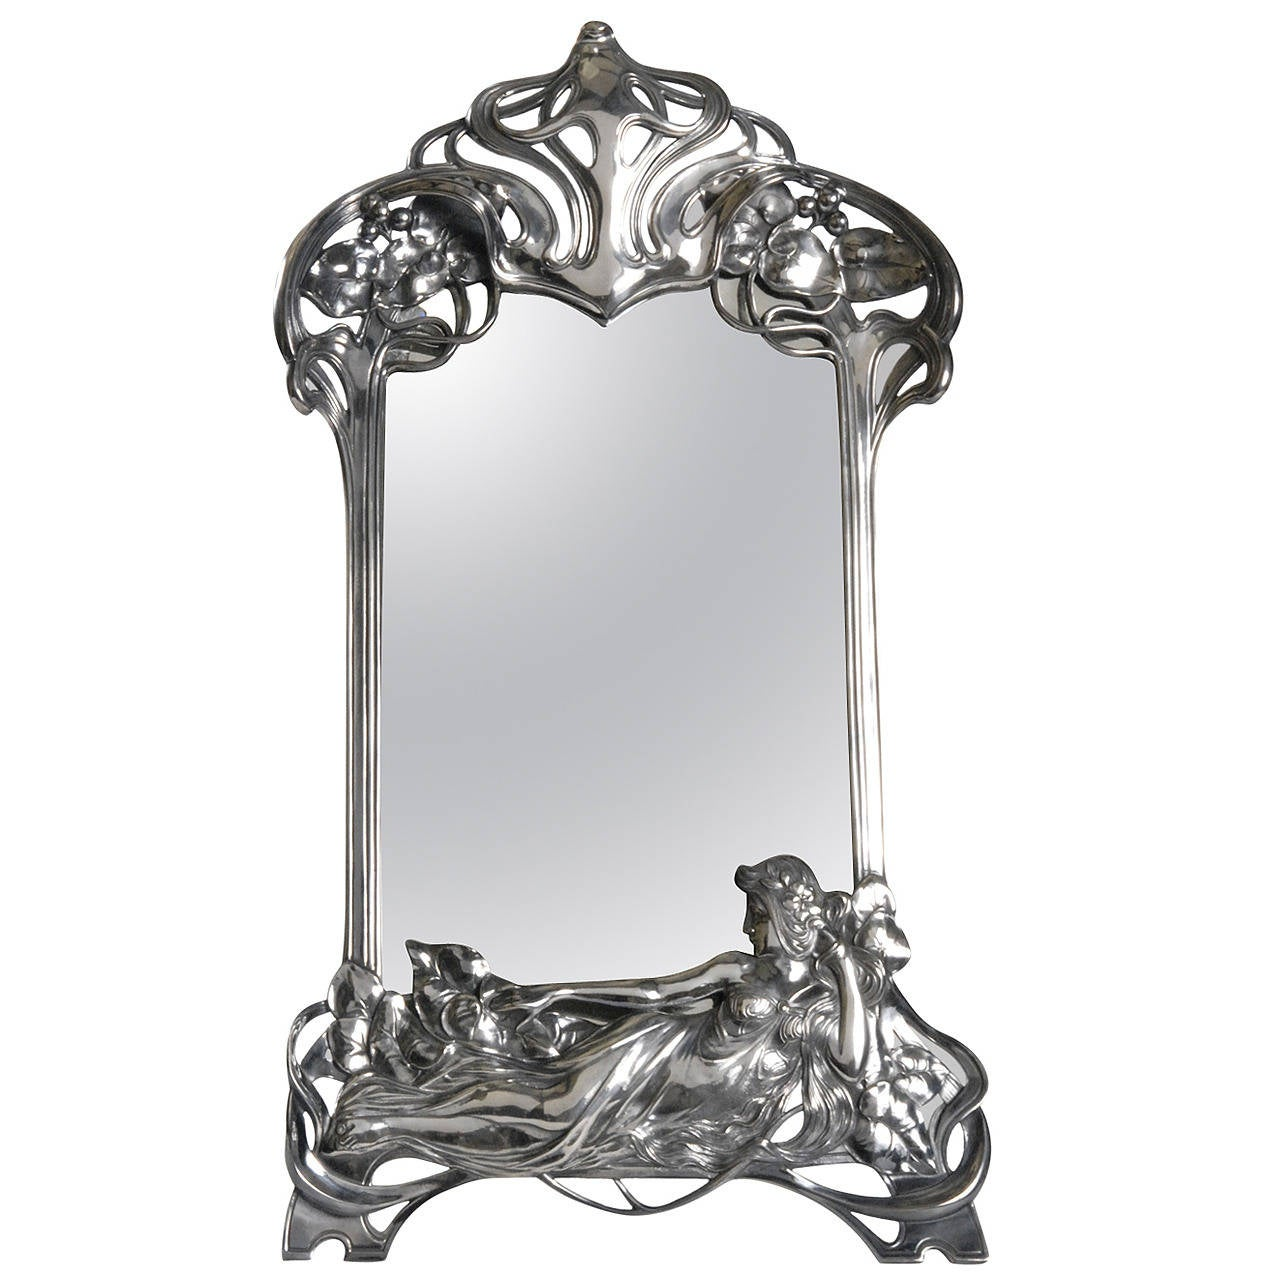 art nouveau wmf silver plated toilet mirror circa 1906 for sale at 1stdibs. Black Bedroom Furniture Sets. Home Design Ideas